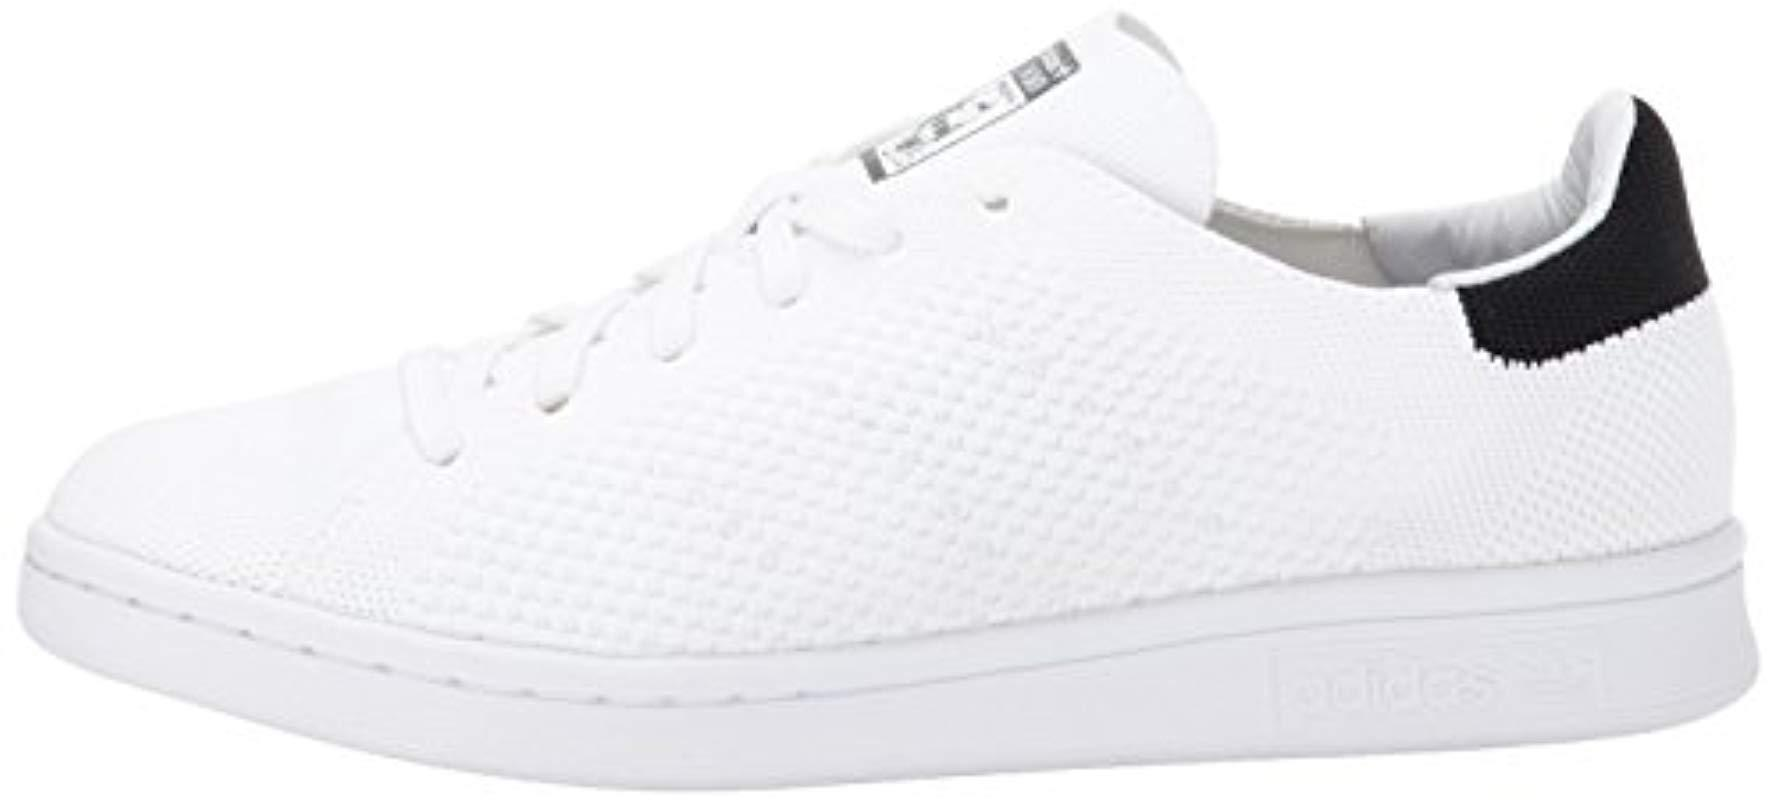 Inolvidable paralelo ligero  adidas Originals Stan Smith Og Pk Fashion Running Shoe in White/White/Black  (White) - Lyst